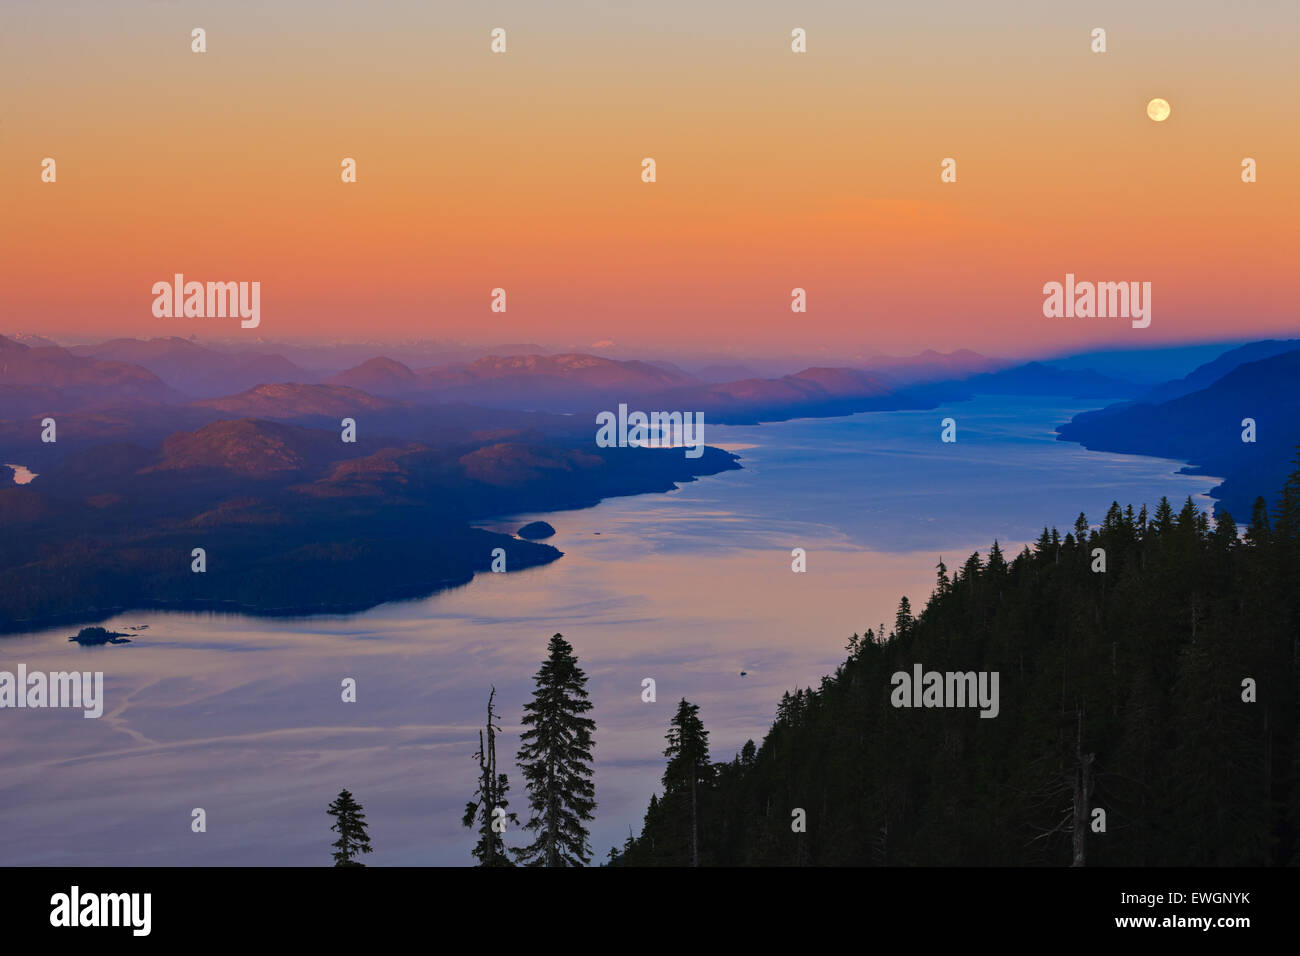 Aerial view over Johnstone Strait and Robson Bight, looking southeast after a beautiful soft sunset on a full moon - Stock Image